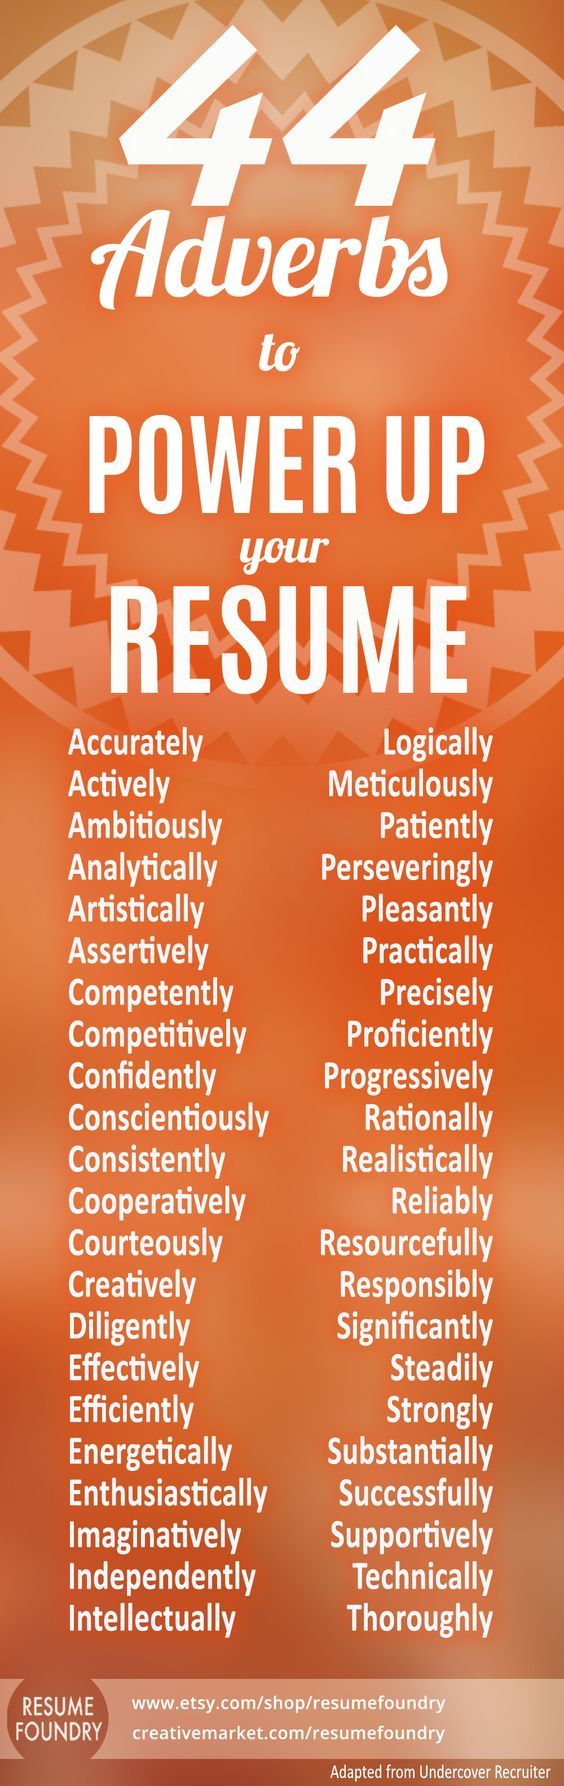 Pin de Michelle Byrd en Job Hunt | Pinterest